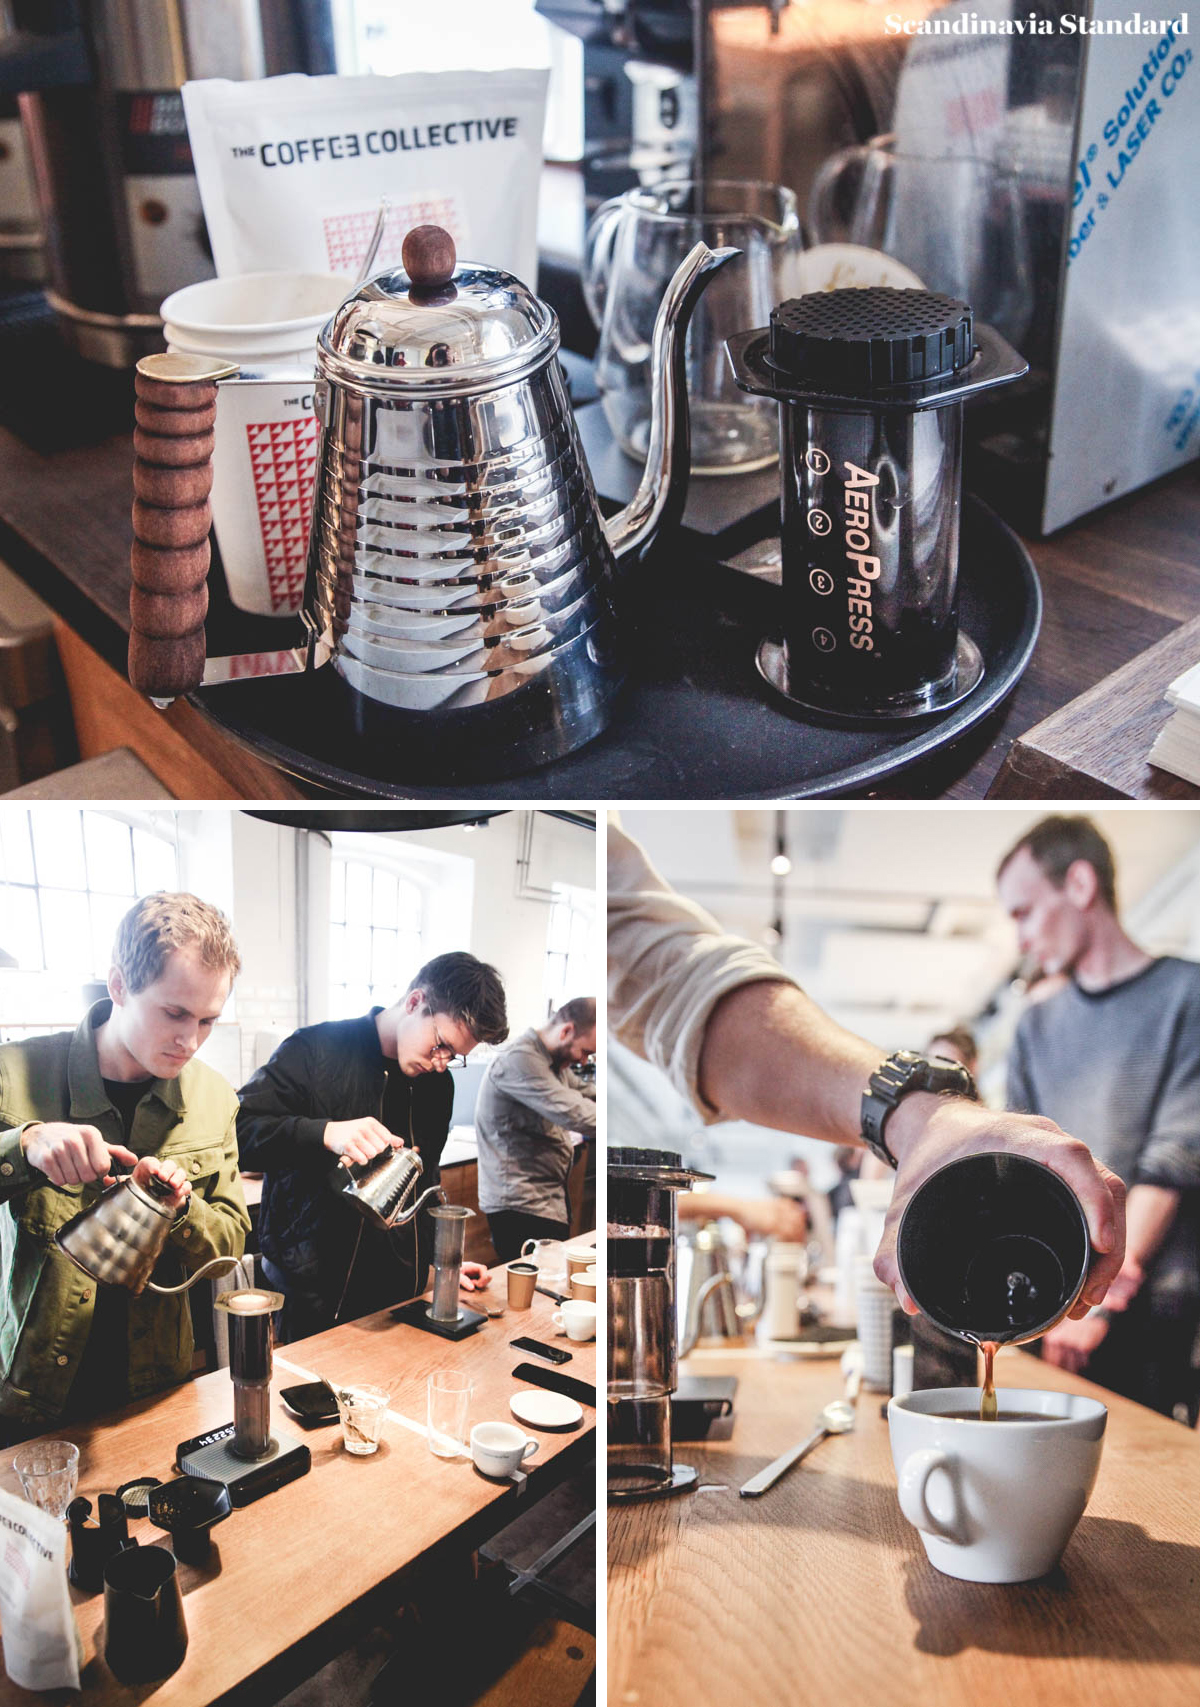 Aeropress Championship Collage | Coffee Collective | Scandinavia Standard